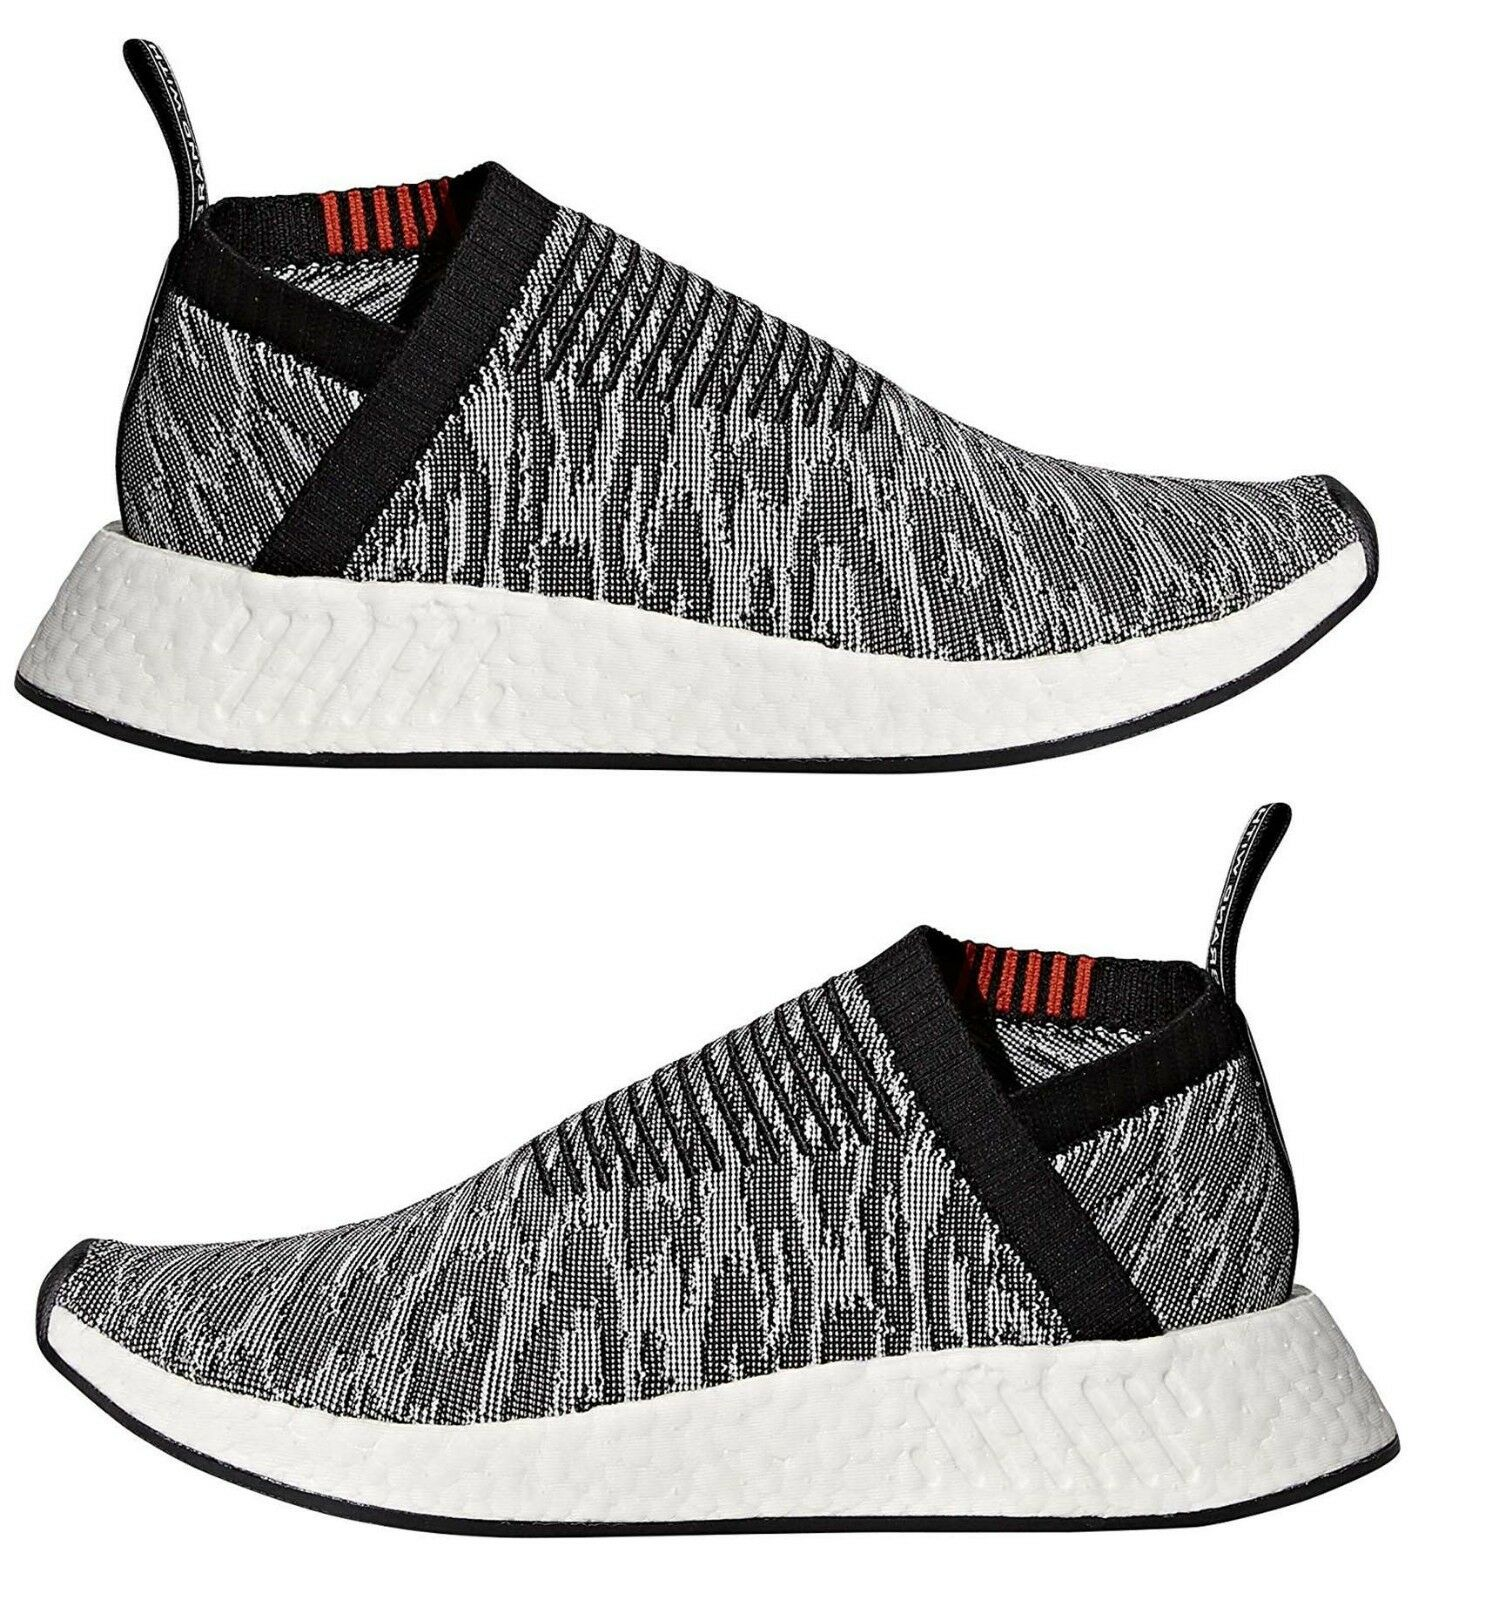 NEW Adidas Boost hommes Athletic Shoes NMD CS2 Prime Knit Running Slip On Sneakers